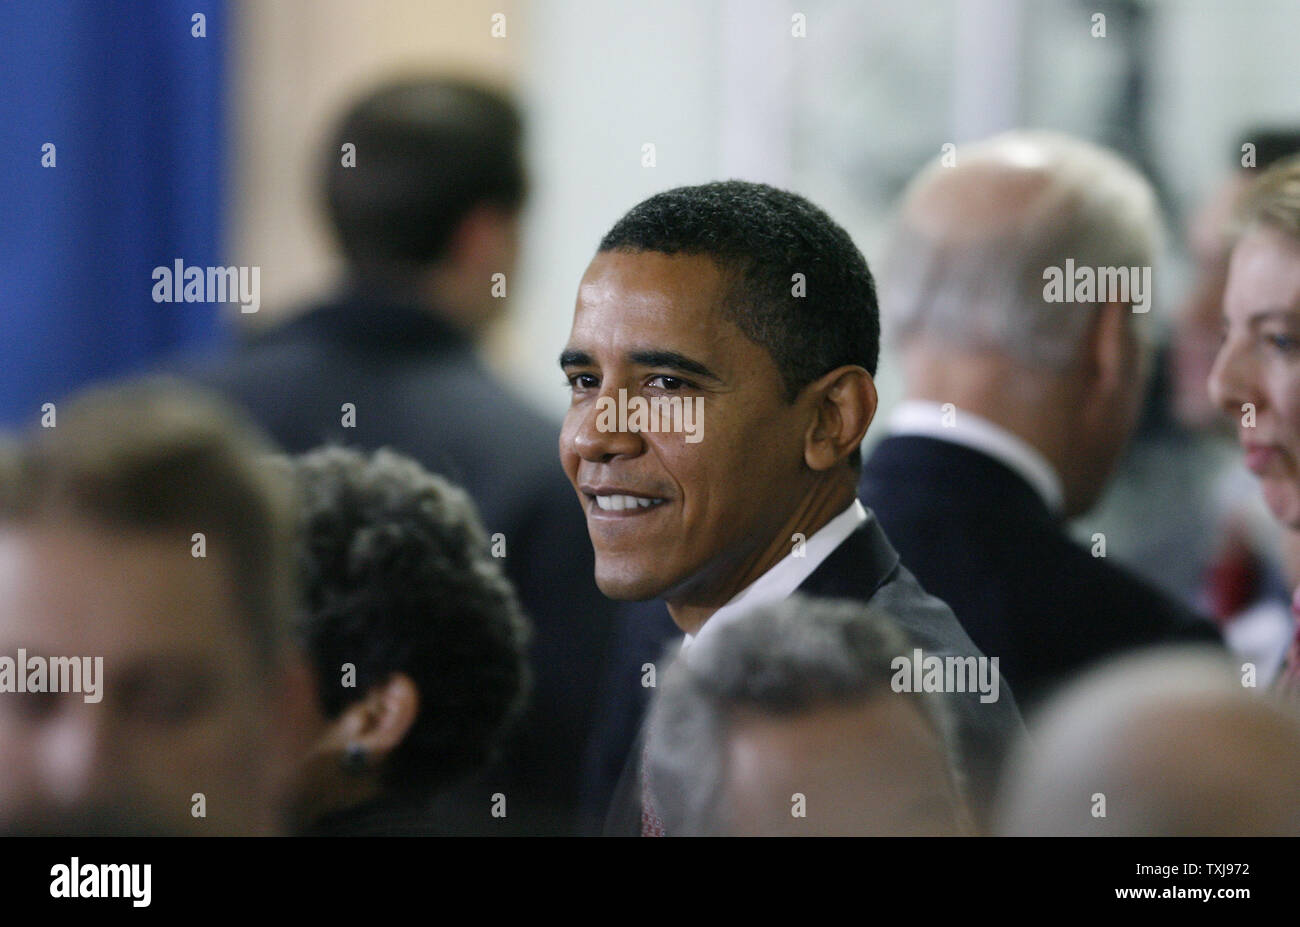 President-elect Barack Obama socializes after a news conference at Dodge Renaissance Academy on December 16, 2008 in Chicago.  Tuesday Obama appointed Arne Duncan, head of the Chicago Public Schools, to be his education secretary. (UPI Photo/Brian Kersey) - Stock Image